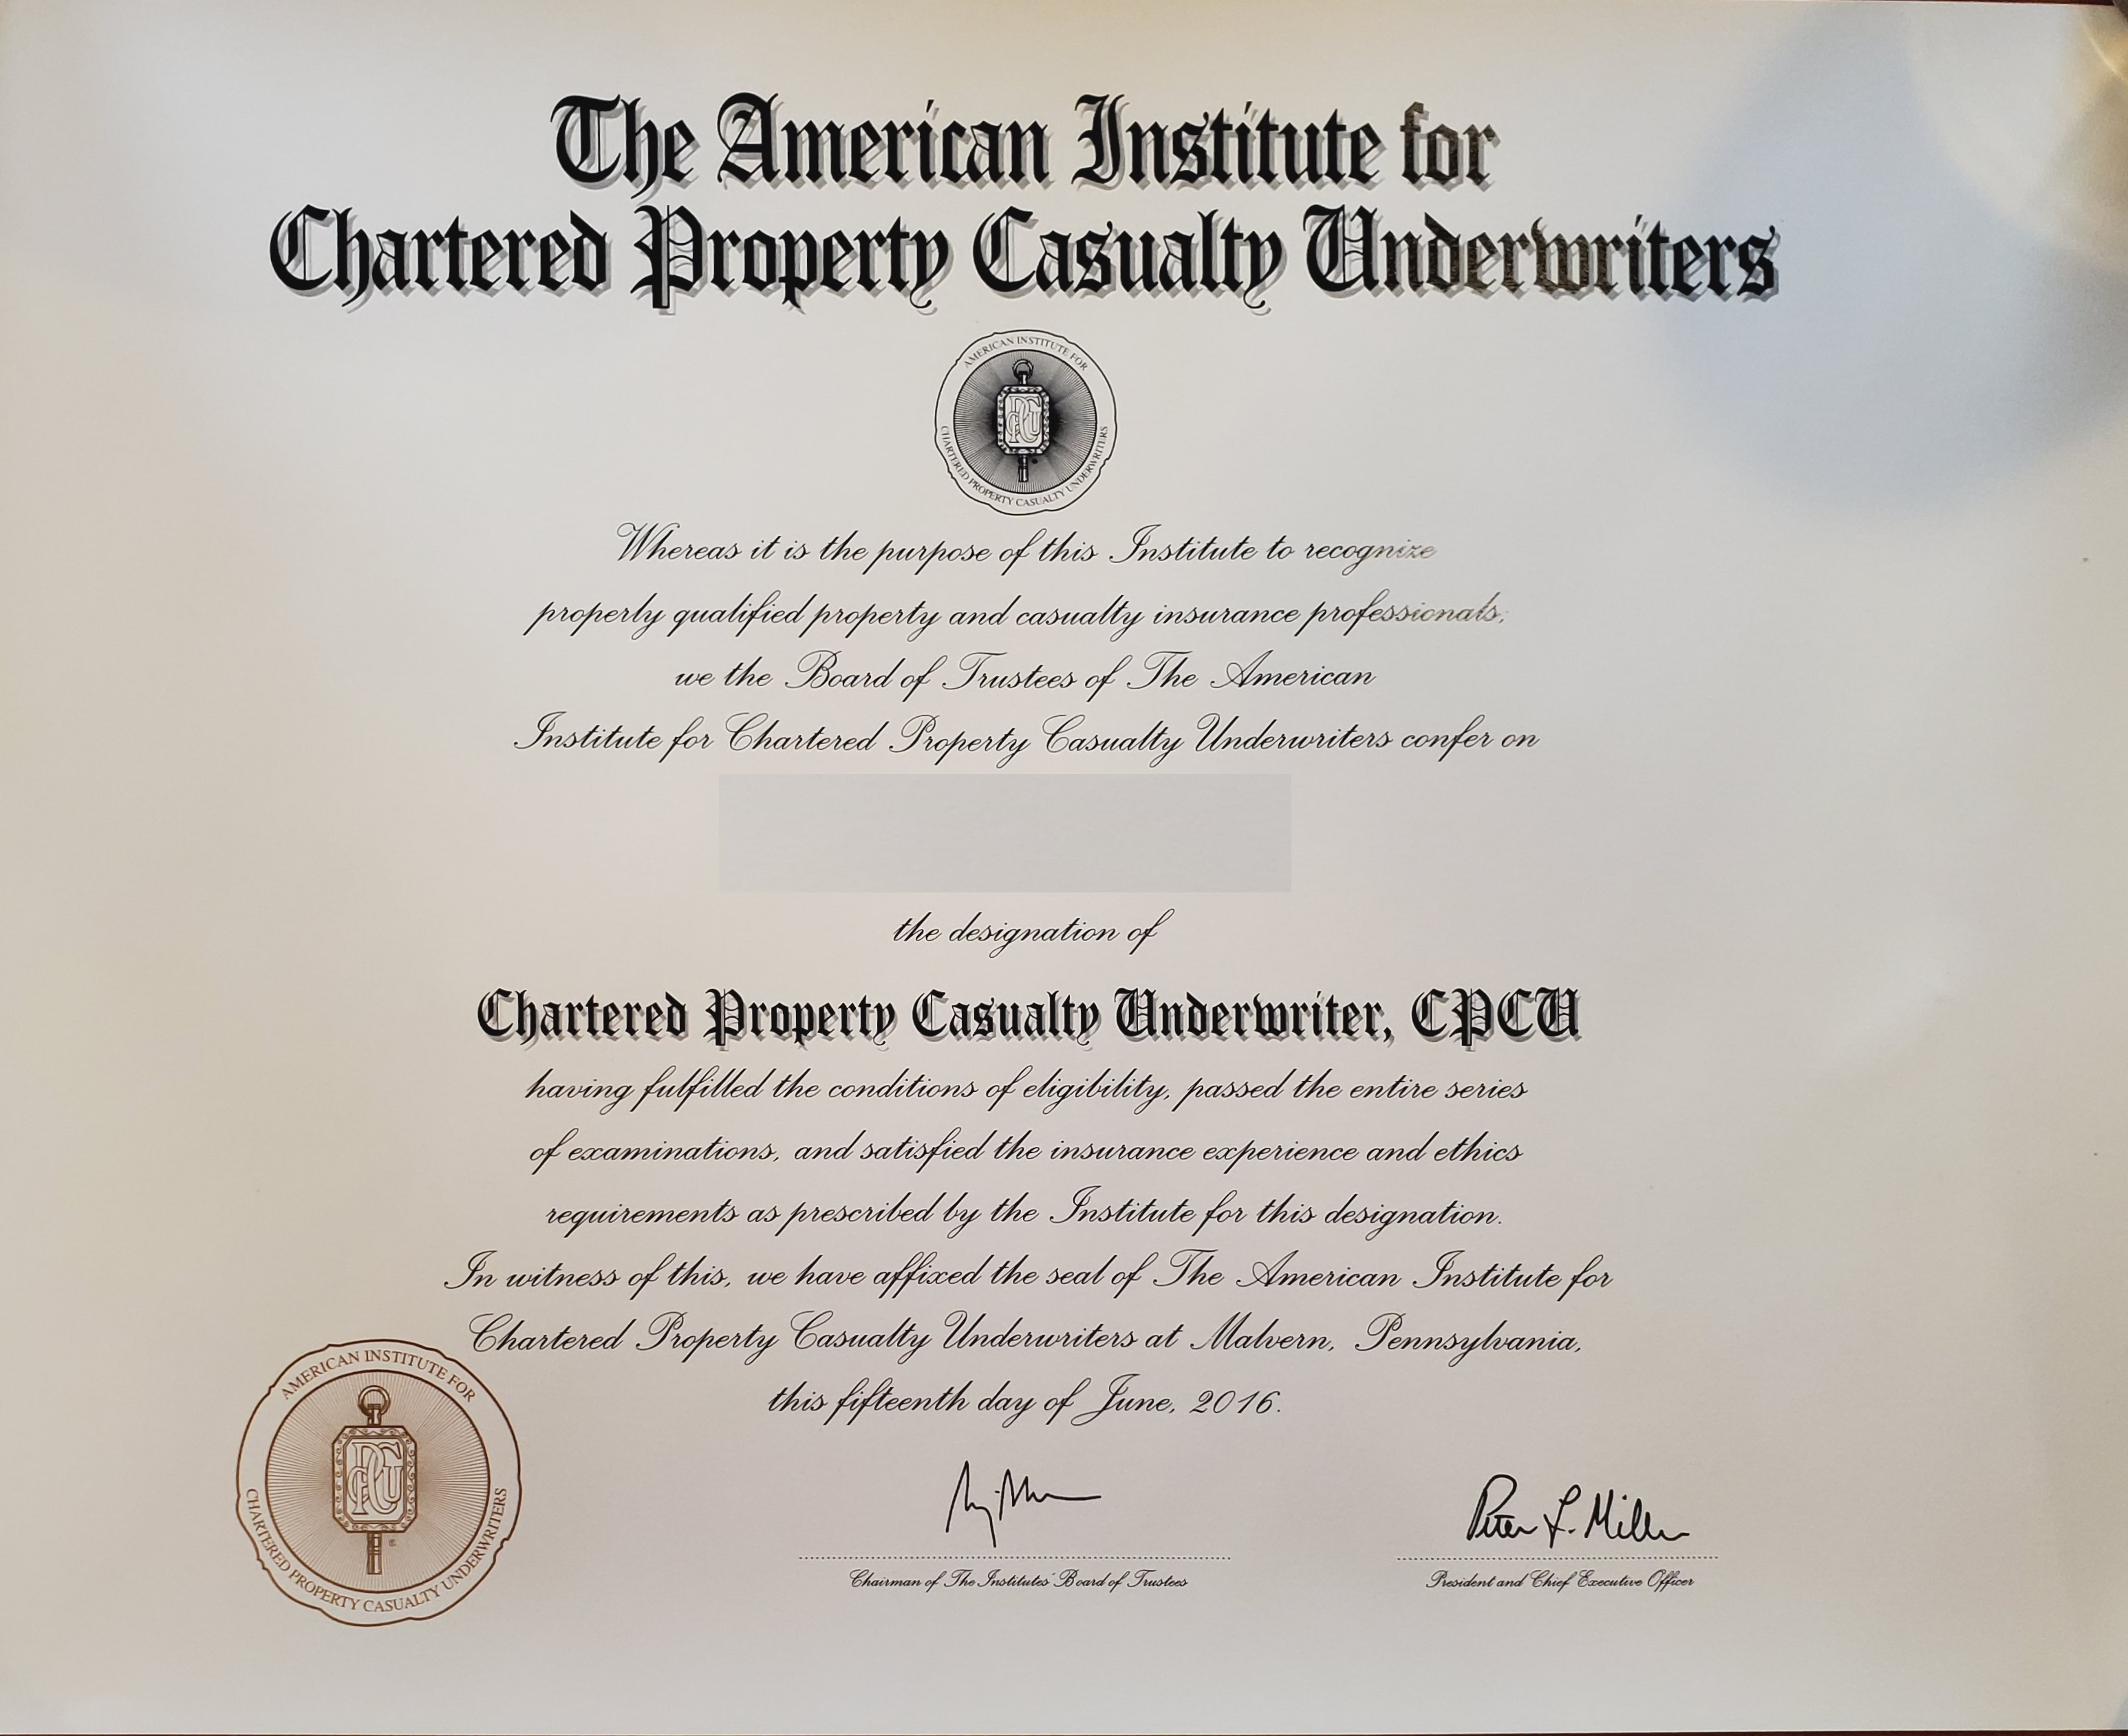 CPCU Designation with AssociatePI